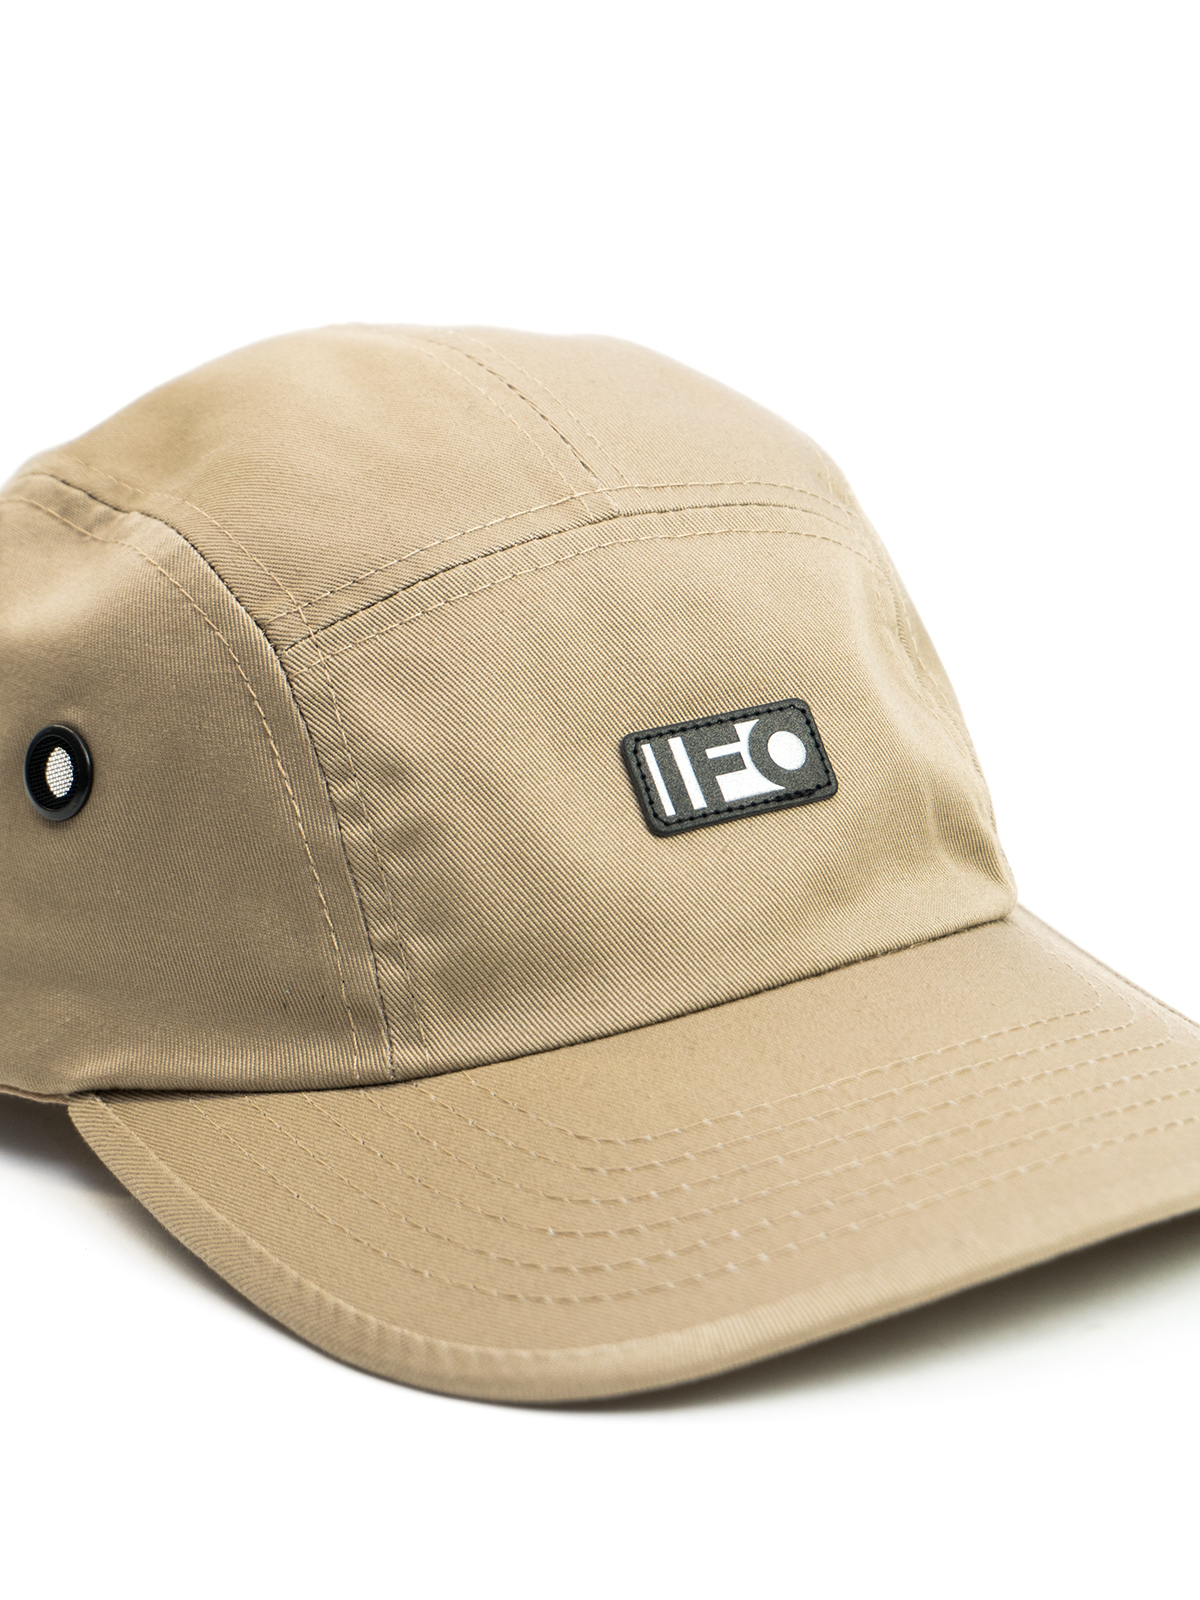 CUTOUT-LOGO-CAMPER-HAT_Khaki_shop04